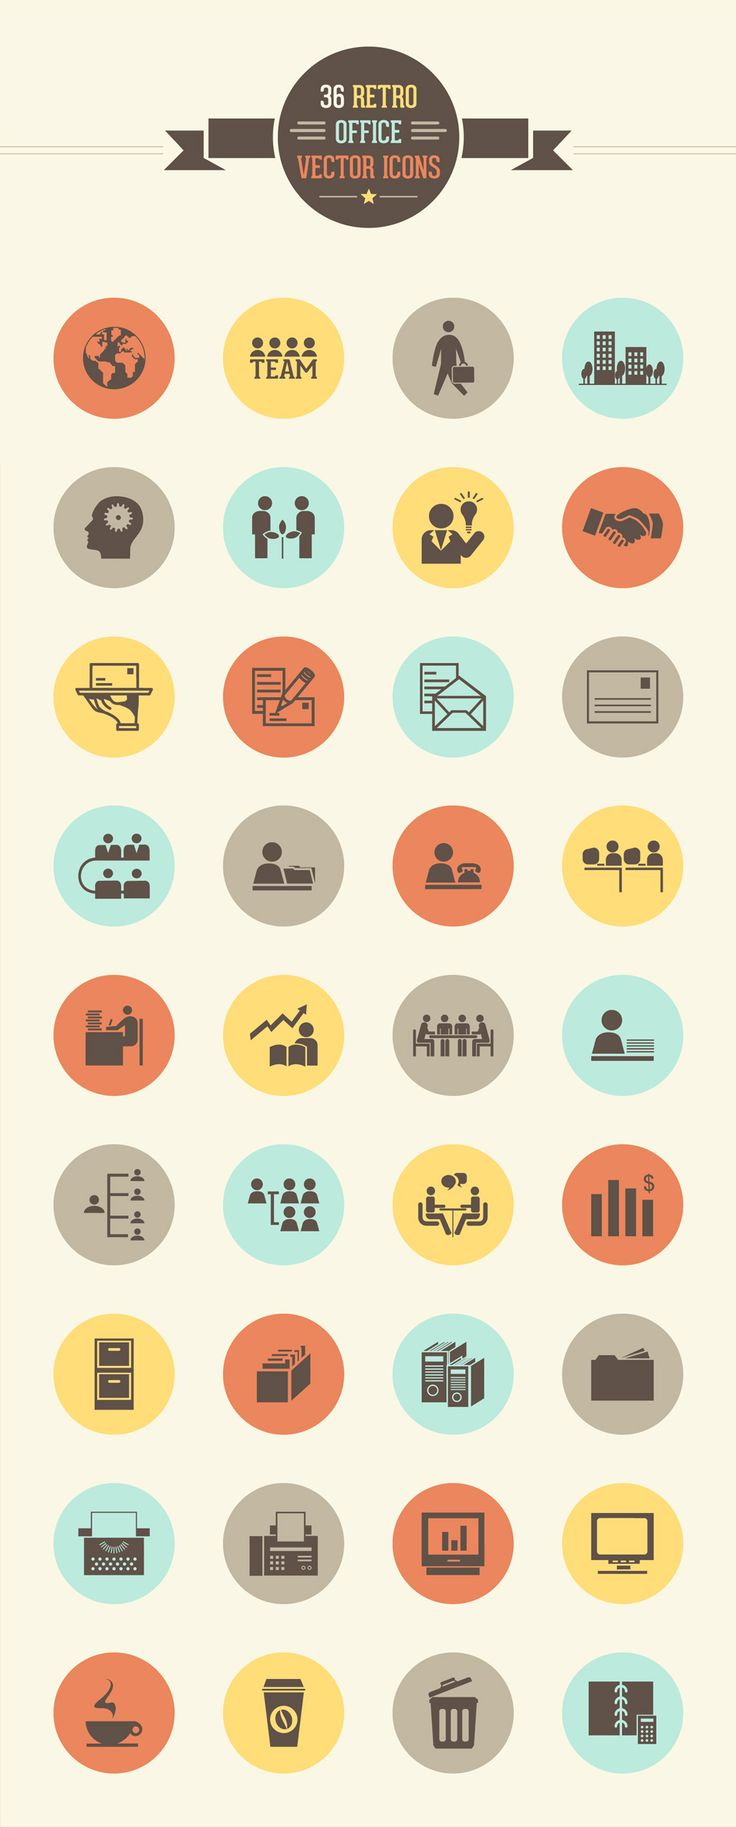 36 Retro Office Vector Icon Set – Freebie No:159